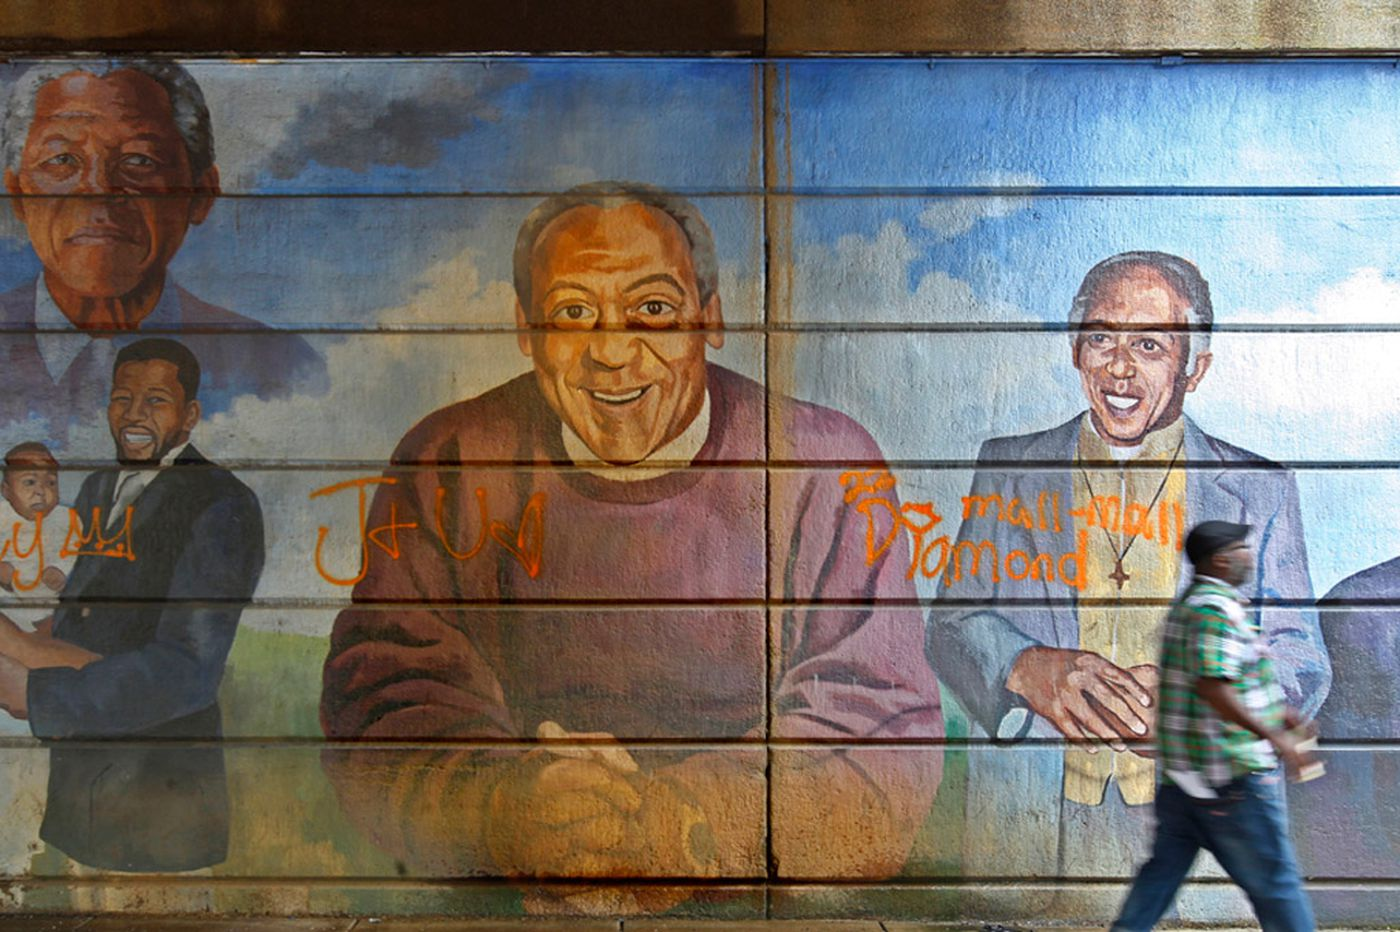 As Cosby's star dims, Phila. to erase a mural